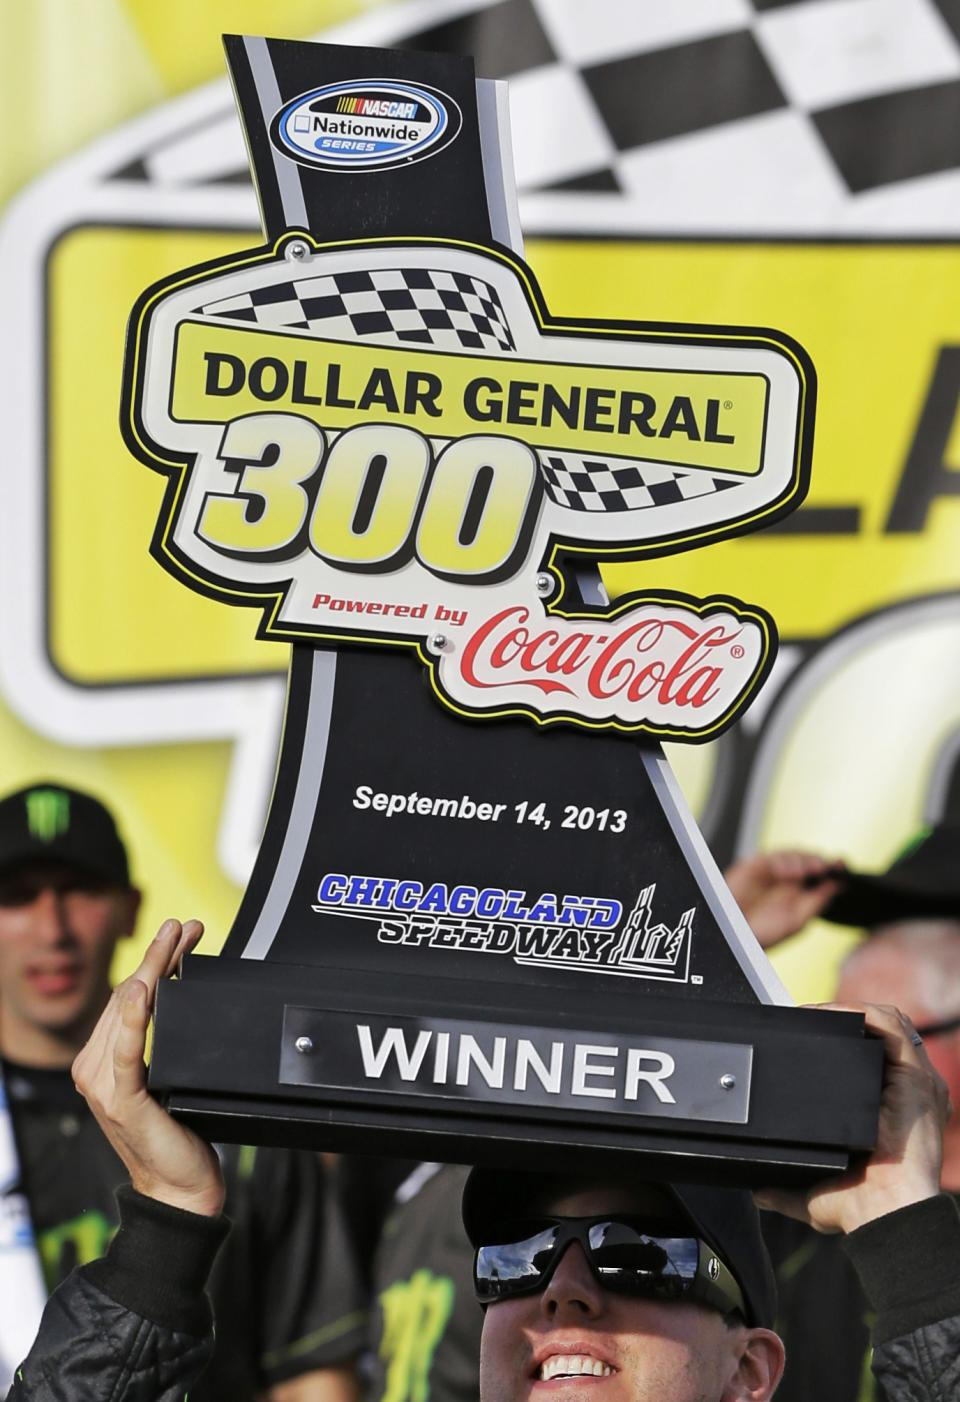 Nationwide shifting NASCAR sponsorship to Cup